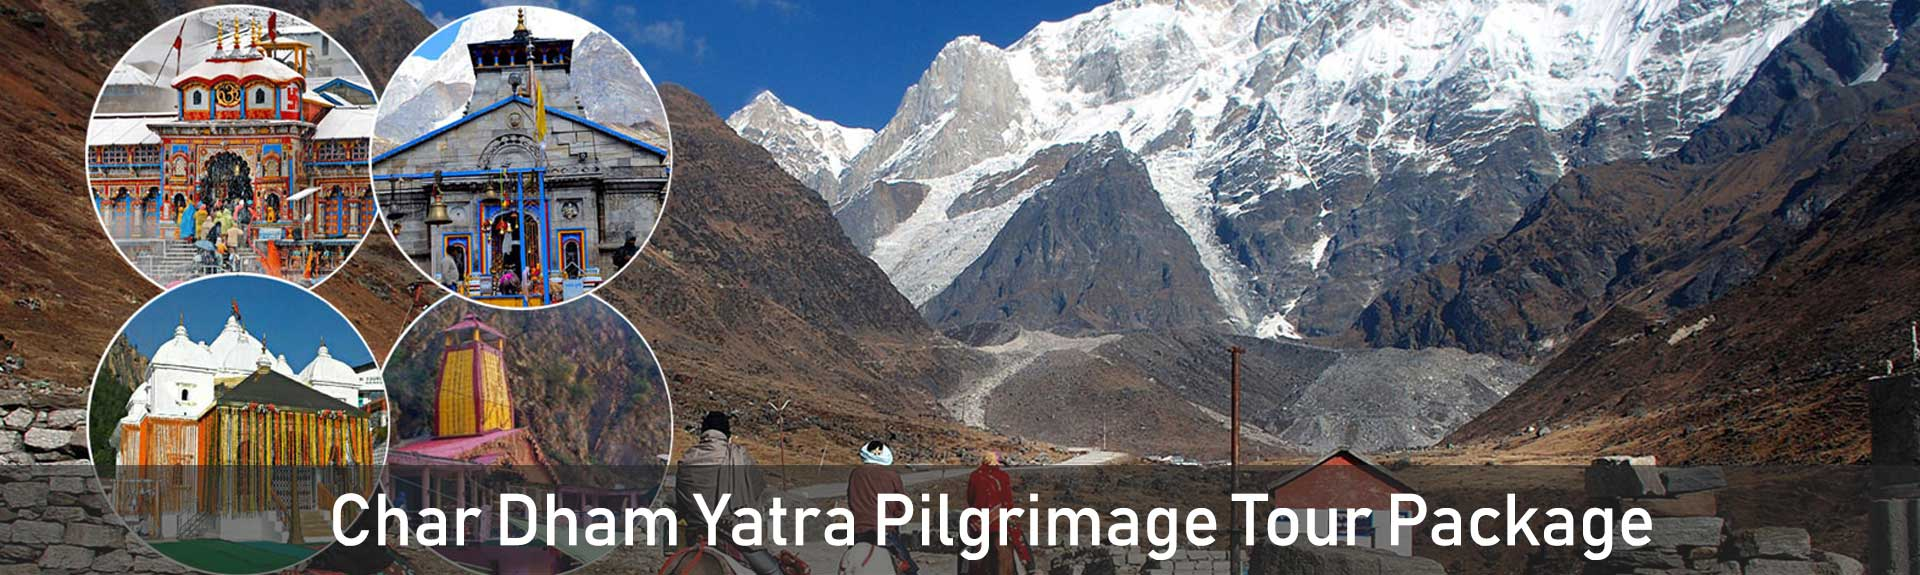 Char Dham Yatra Pilgrimage Tour Package